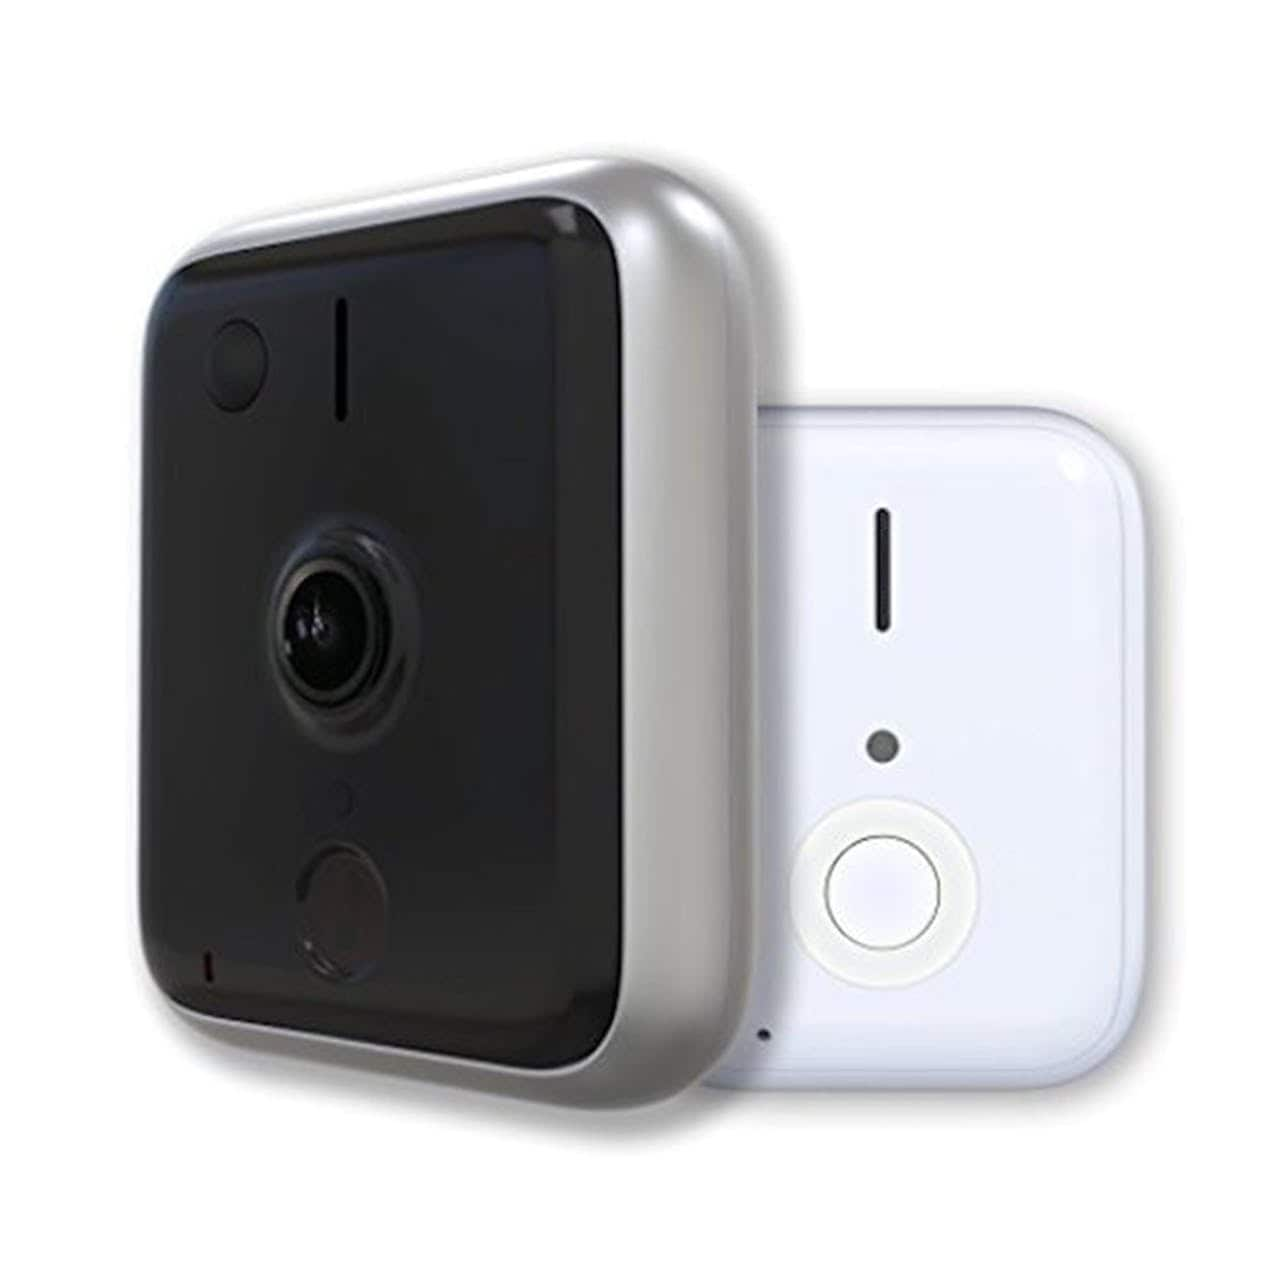 IseeBell WiFi Enabled Video Doorbell Security for $97.99 + Free Shipping